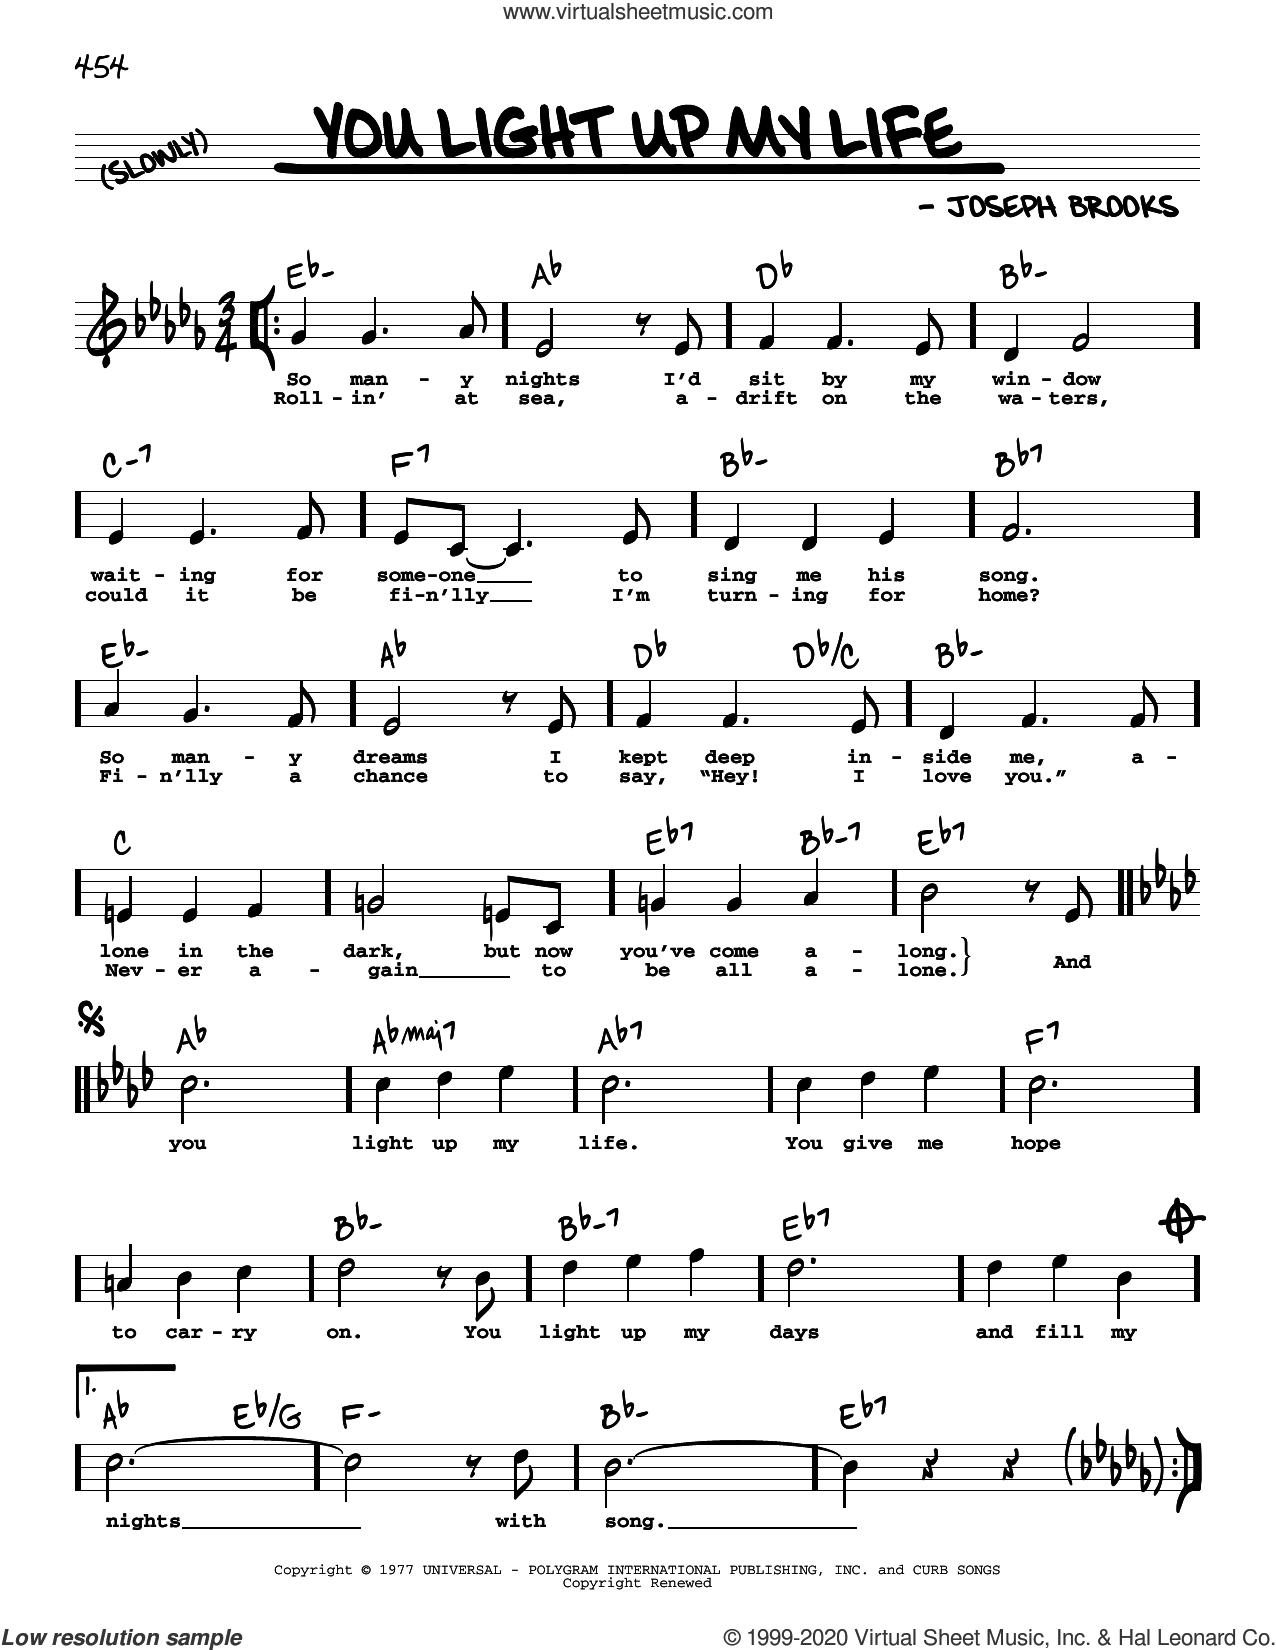 You Light Up My Life (High Voice) sheet music for voice and other instruments (high voice) by Debby Boone and Joseph Brooks, intermediate skill level